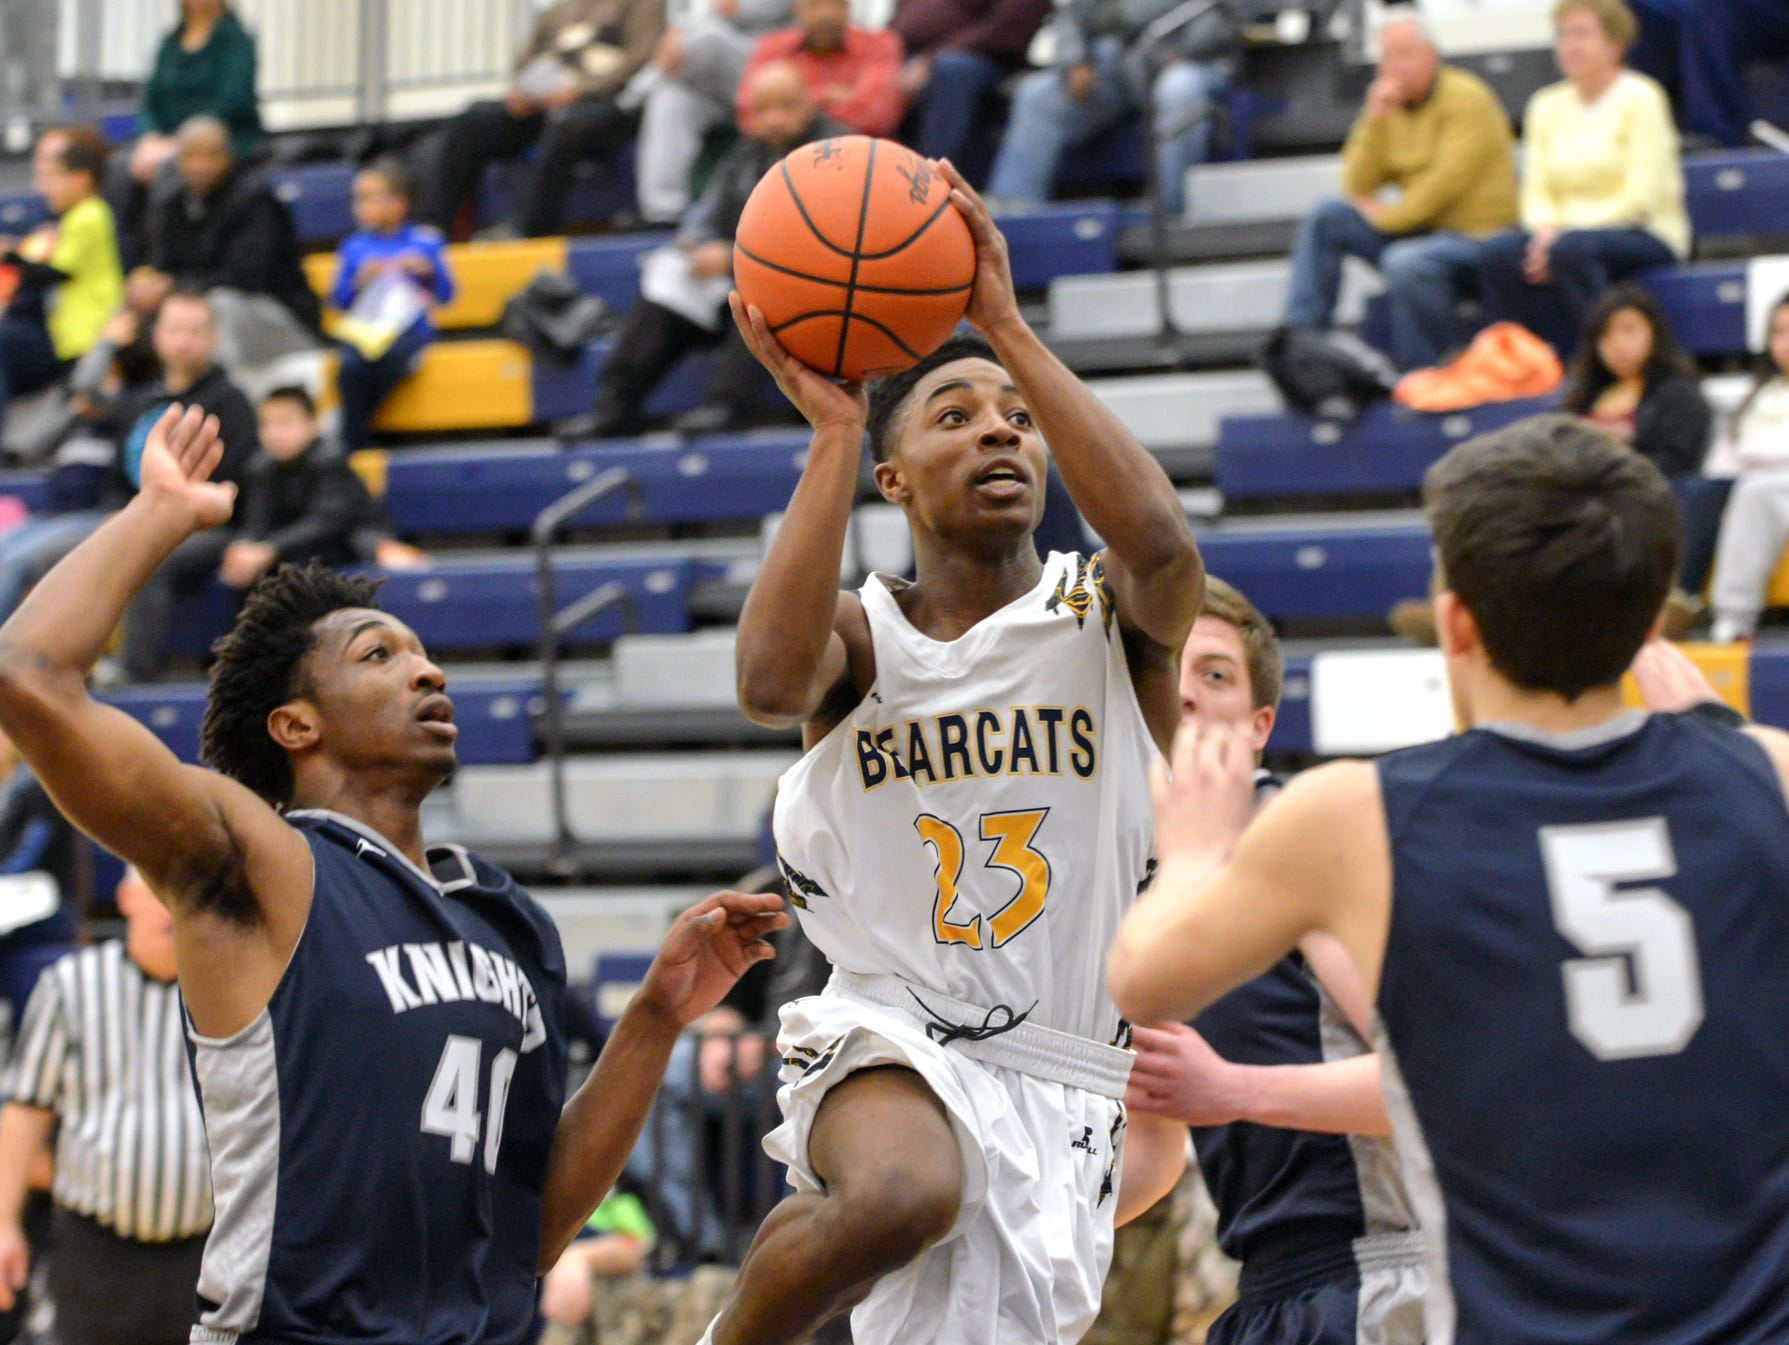 Central's Dontell Hardy (23) drives for the basket between Loy Norrix defenders.